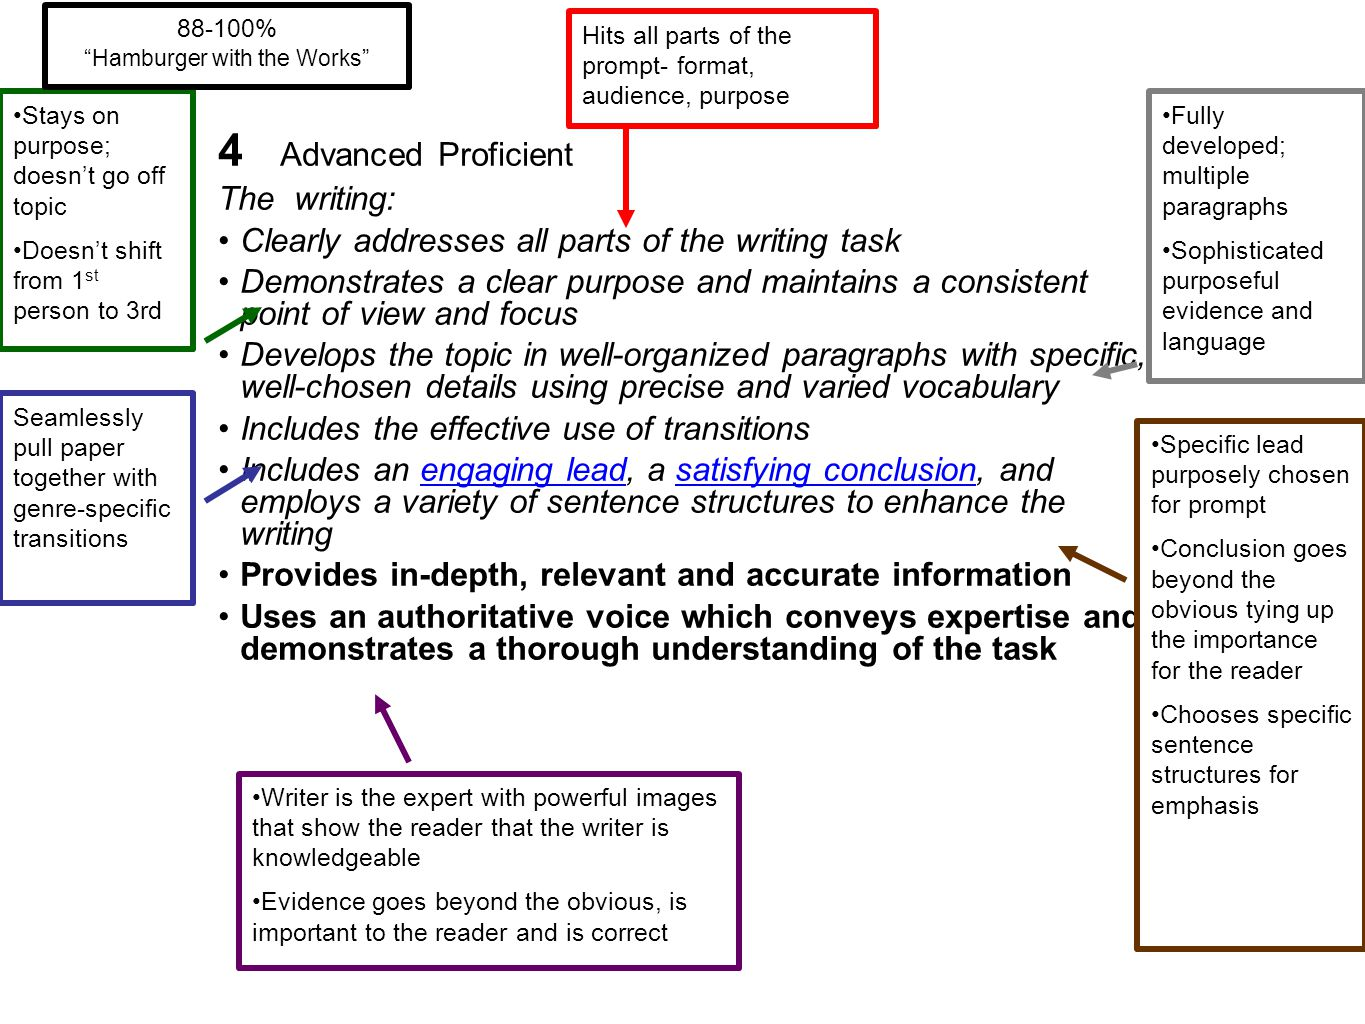 4 Advanced Proficient The writing: Clearly addresses all parts of the writing task Demonstrates a clear purpose and maintains a consistent point of vi